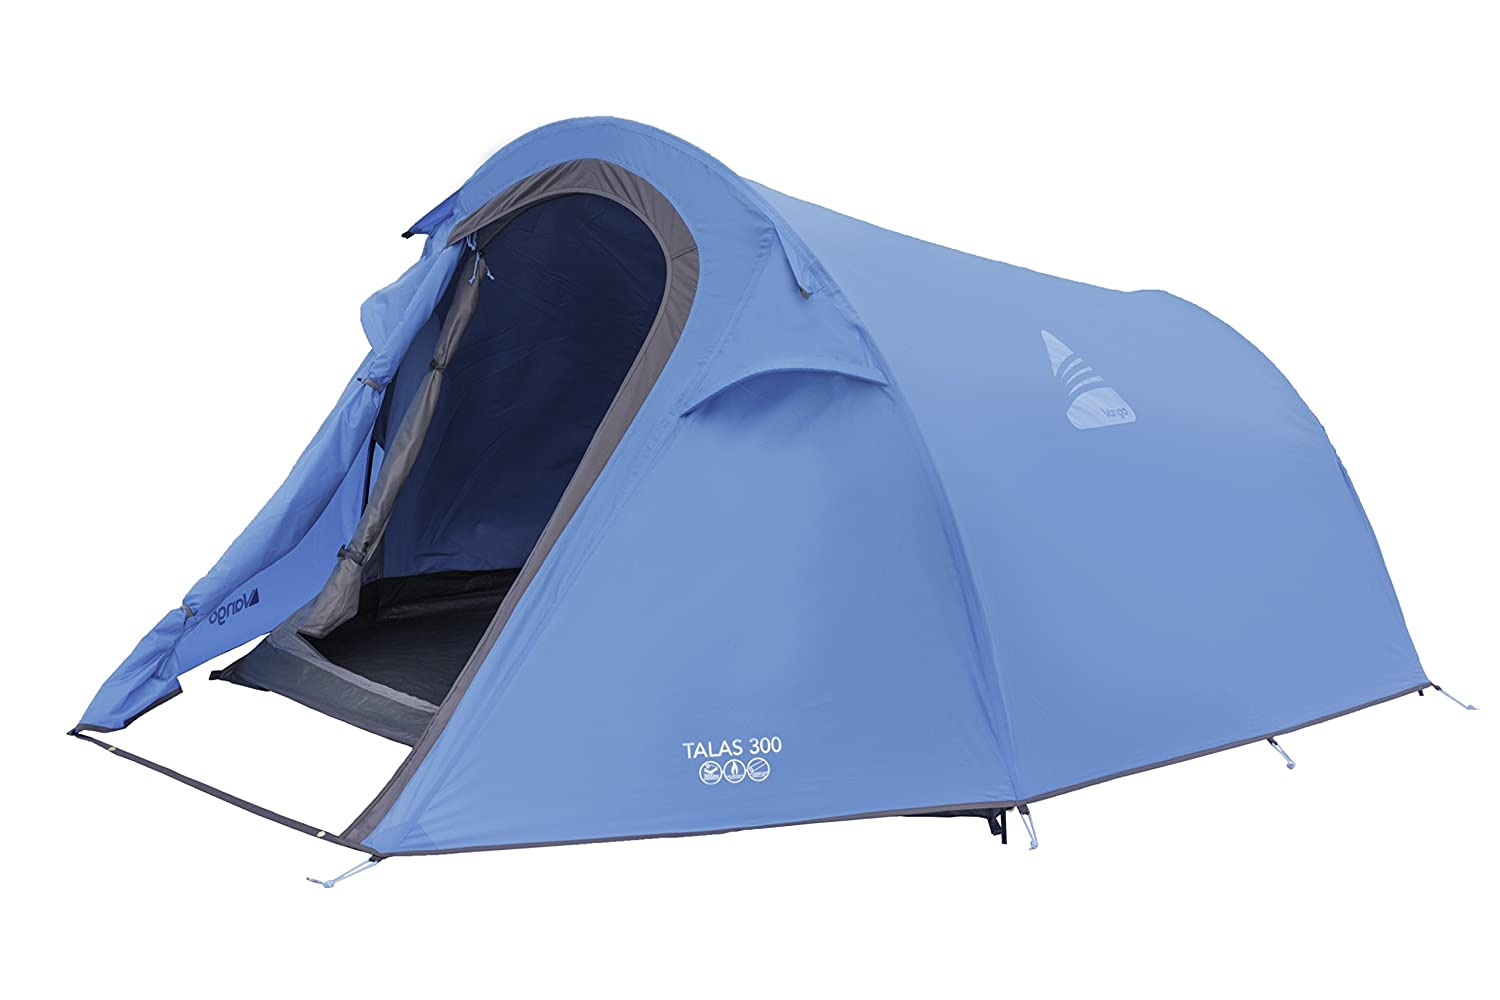 Vango Talas 200 Three Man Tent-3 Person - Tiendas de campaña de túnel, color verde, talla NA